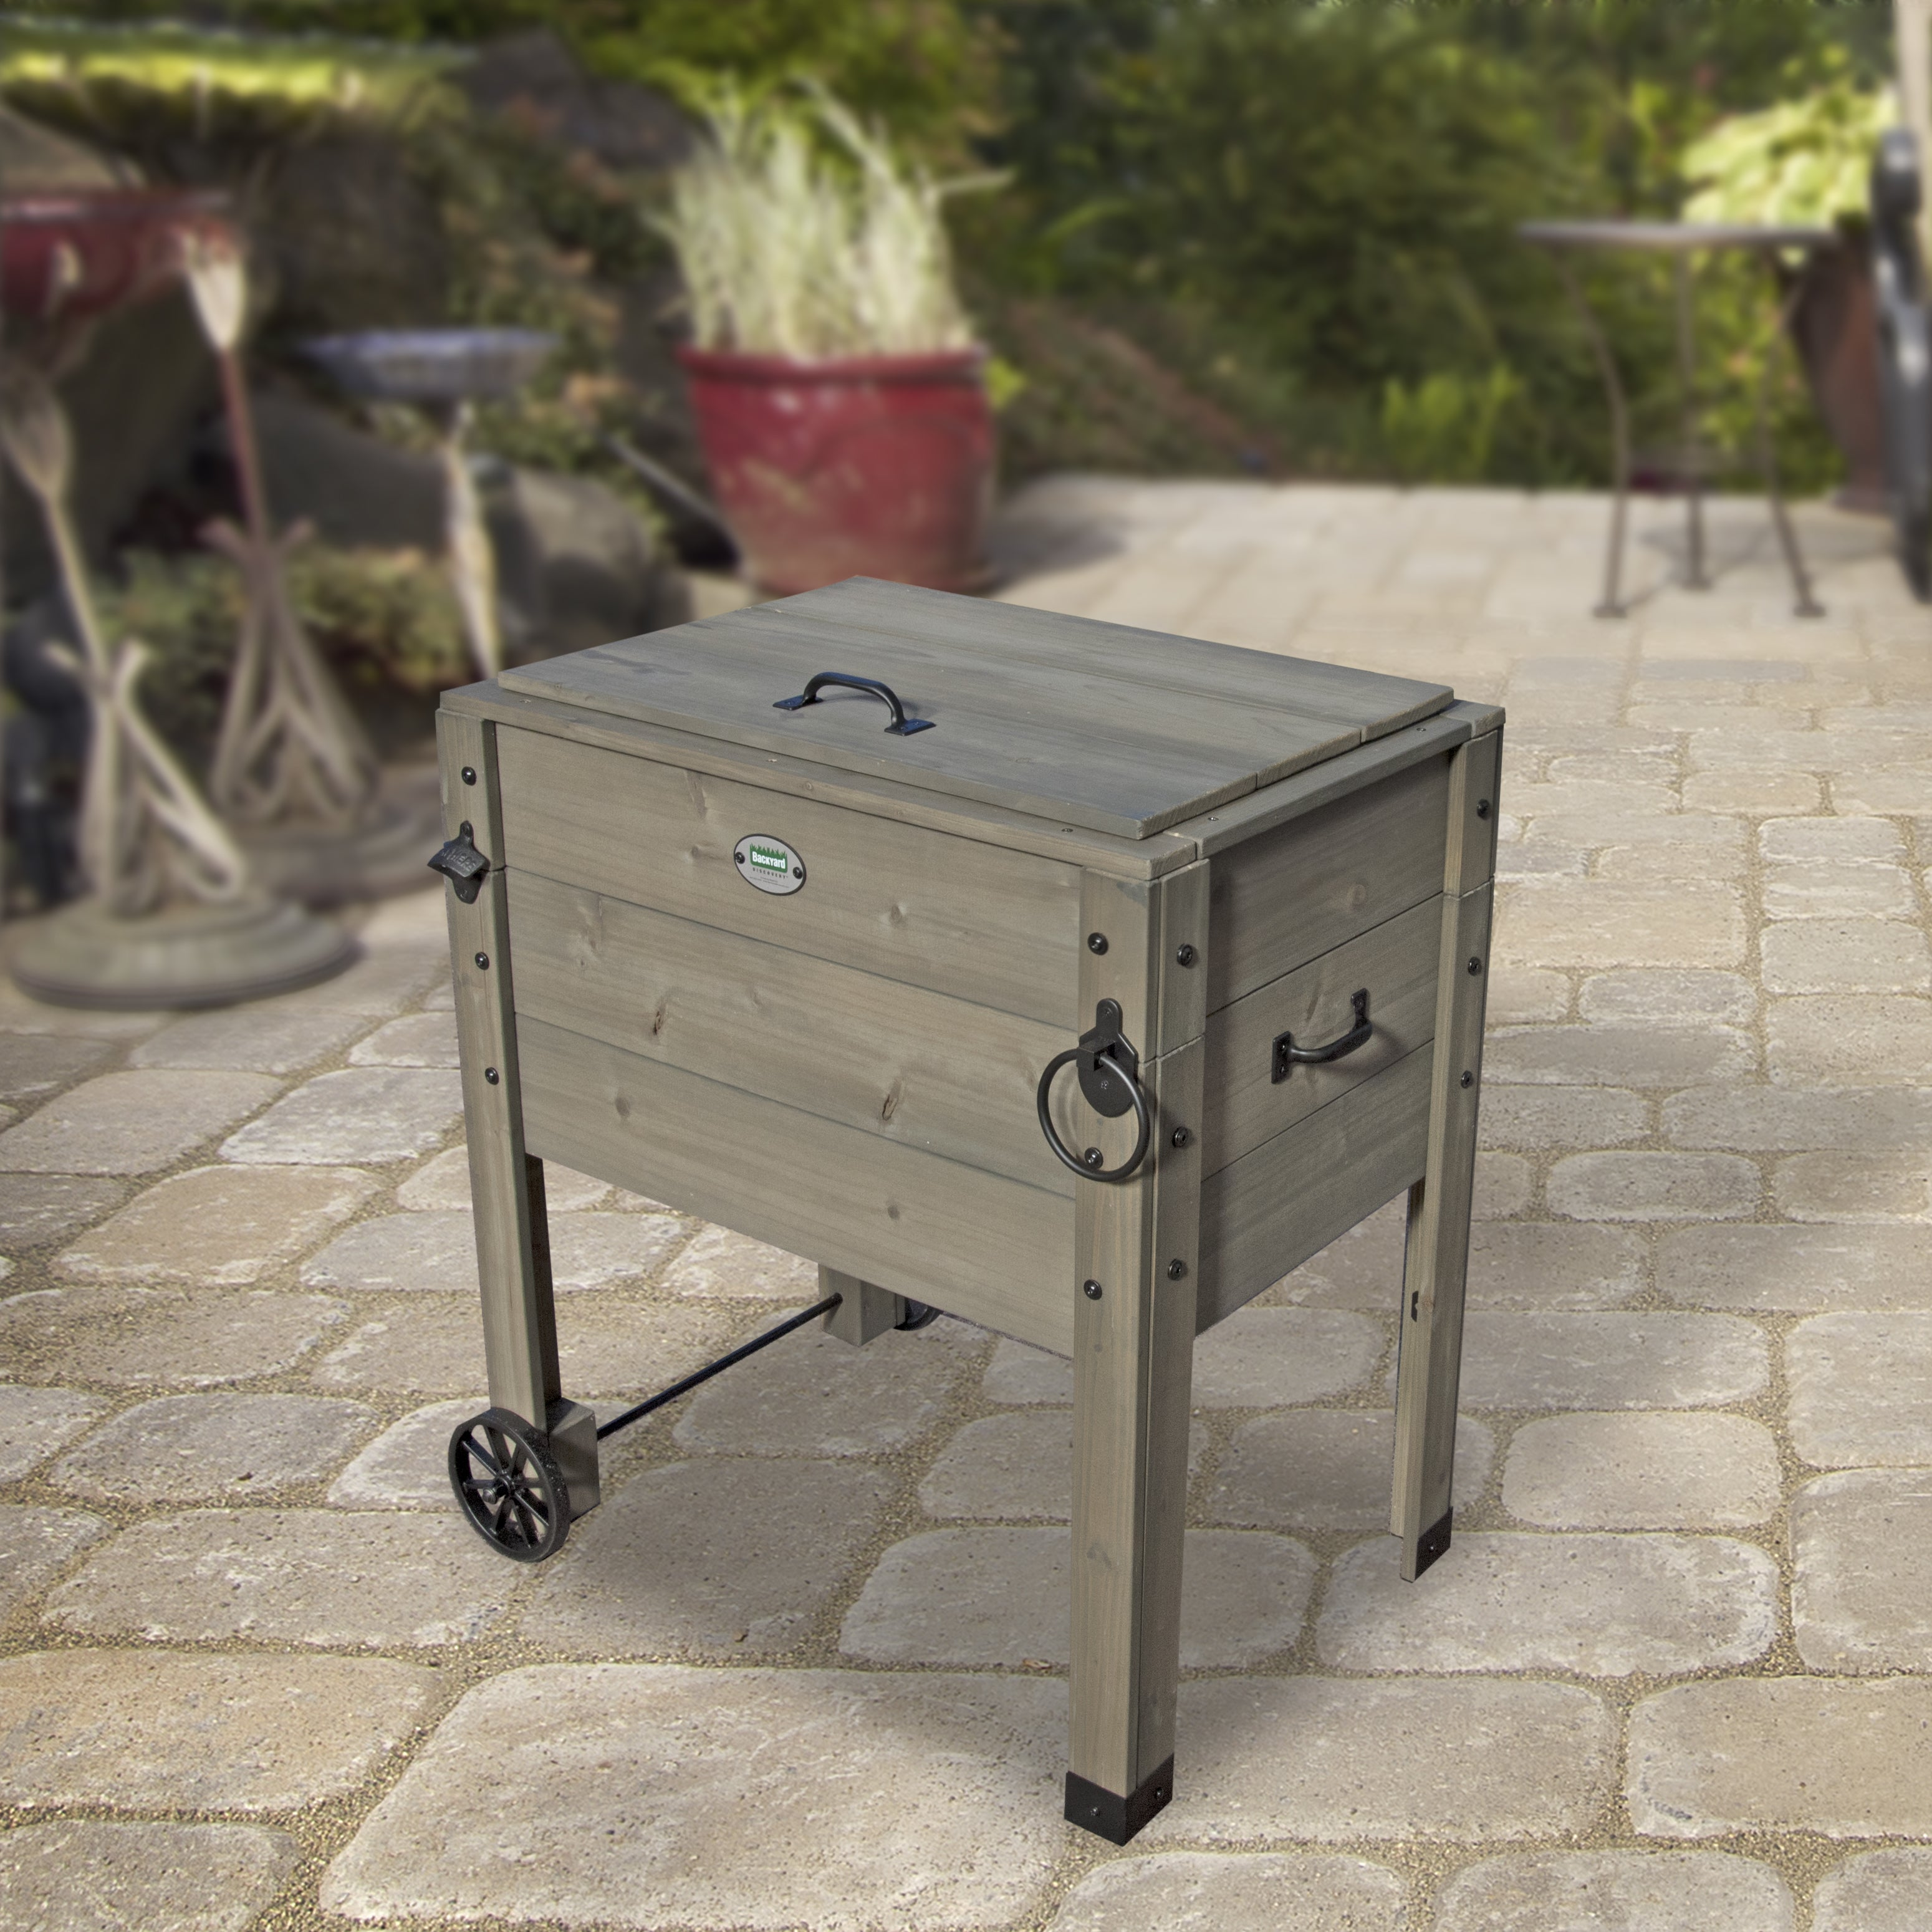 Shop Backyard Discovery Barnwood Outdoor Patio Cooler Stand   Free Shipping  Today   Overstock.com   16916728